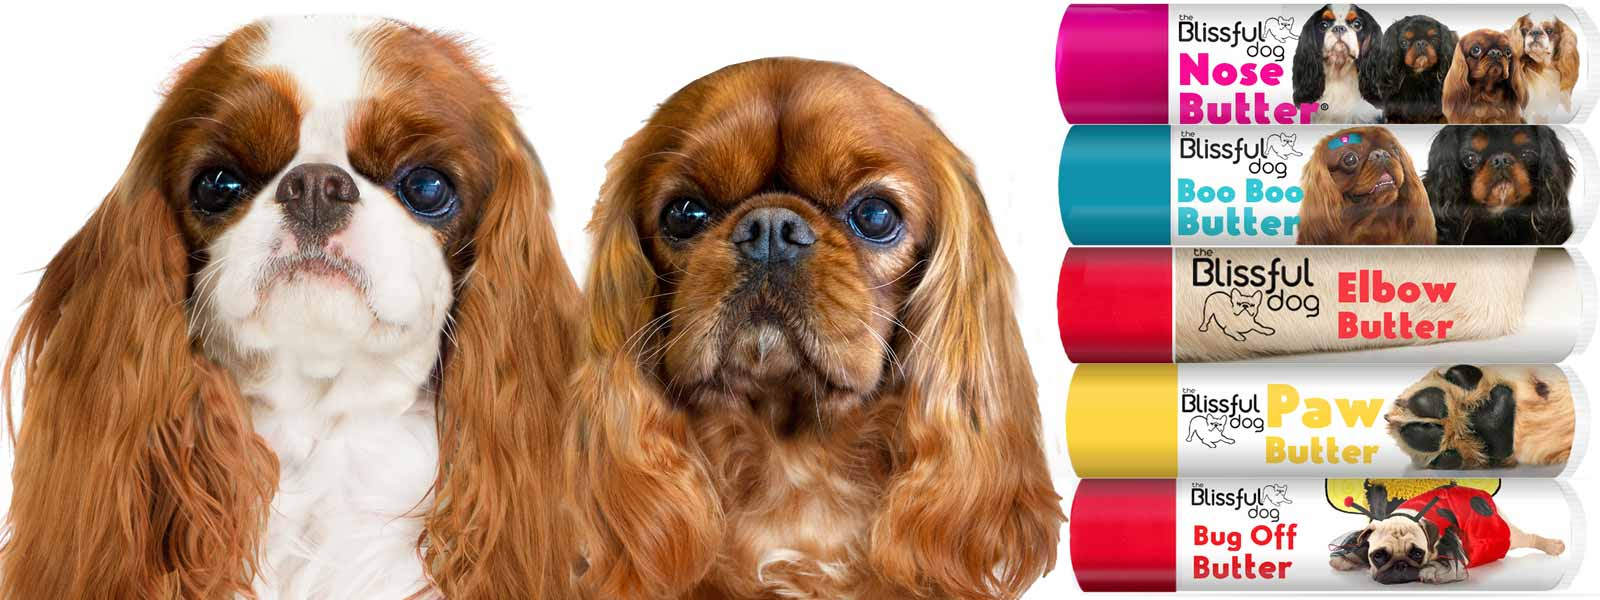 blenheim and ruby english toy spaniel